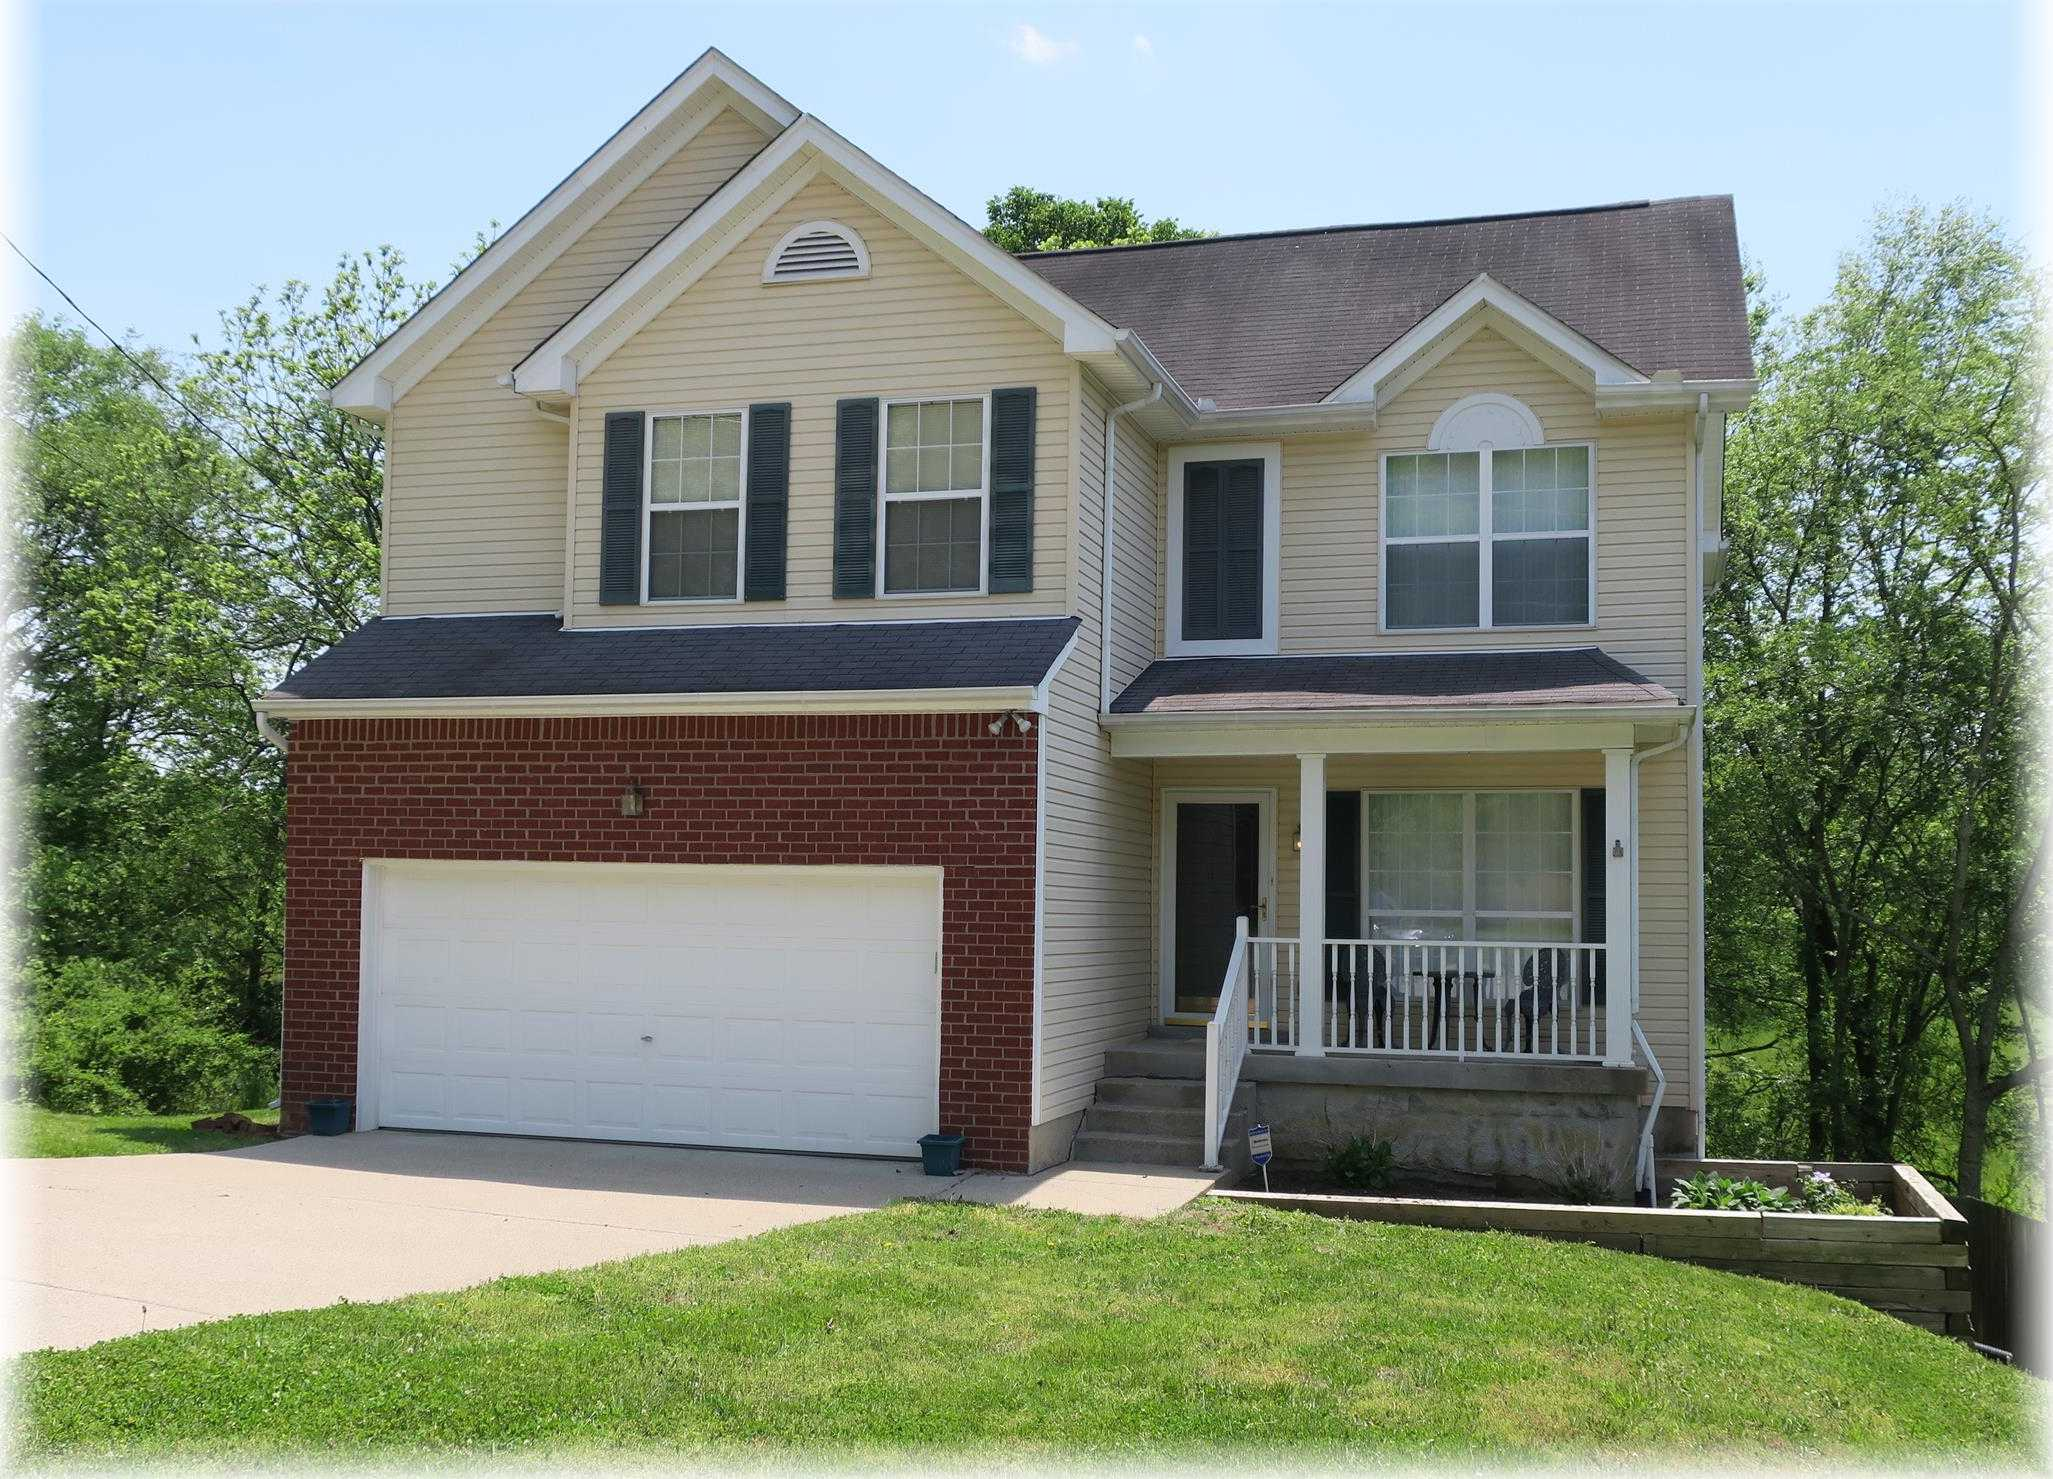 $252,900 - 4Br/4Ba -  for Sale in North Pointe Ph 2, Goodlettsville